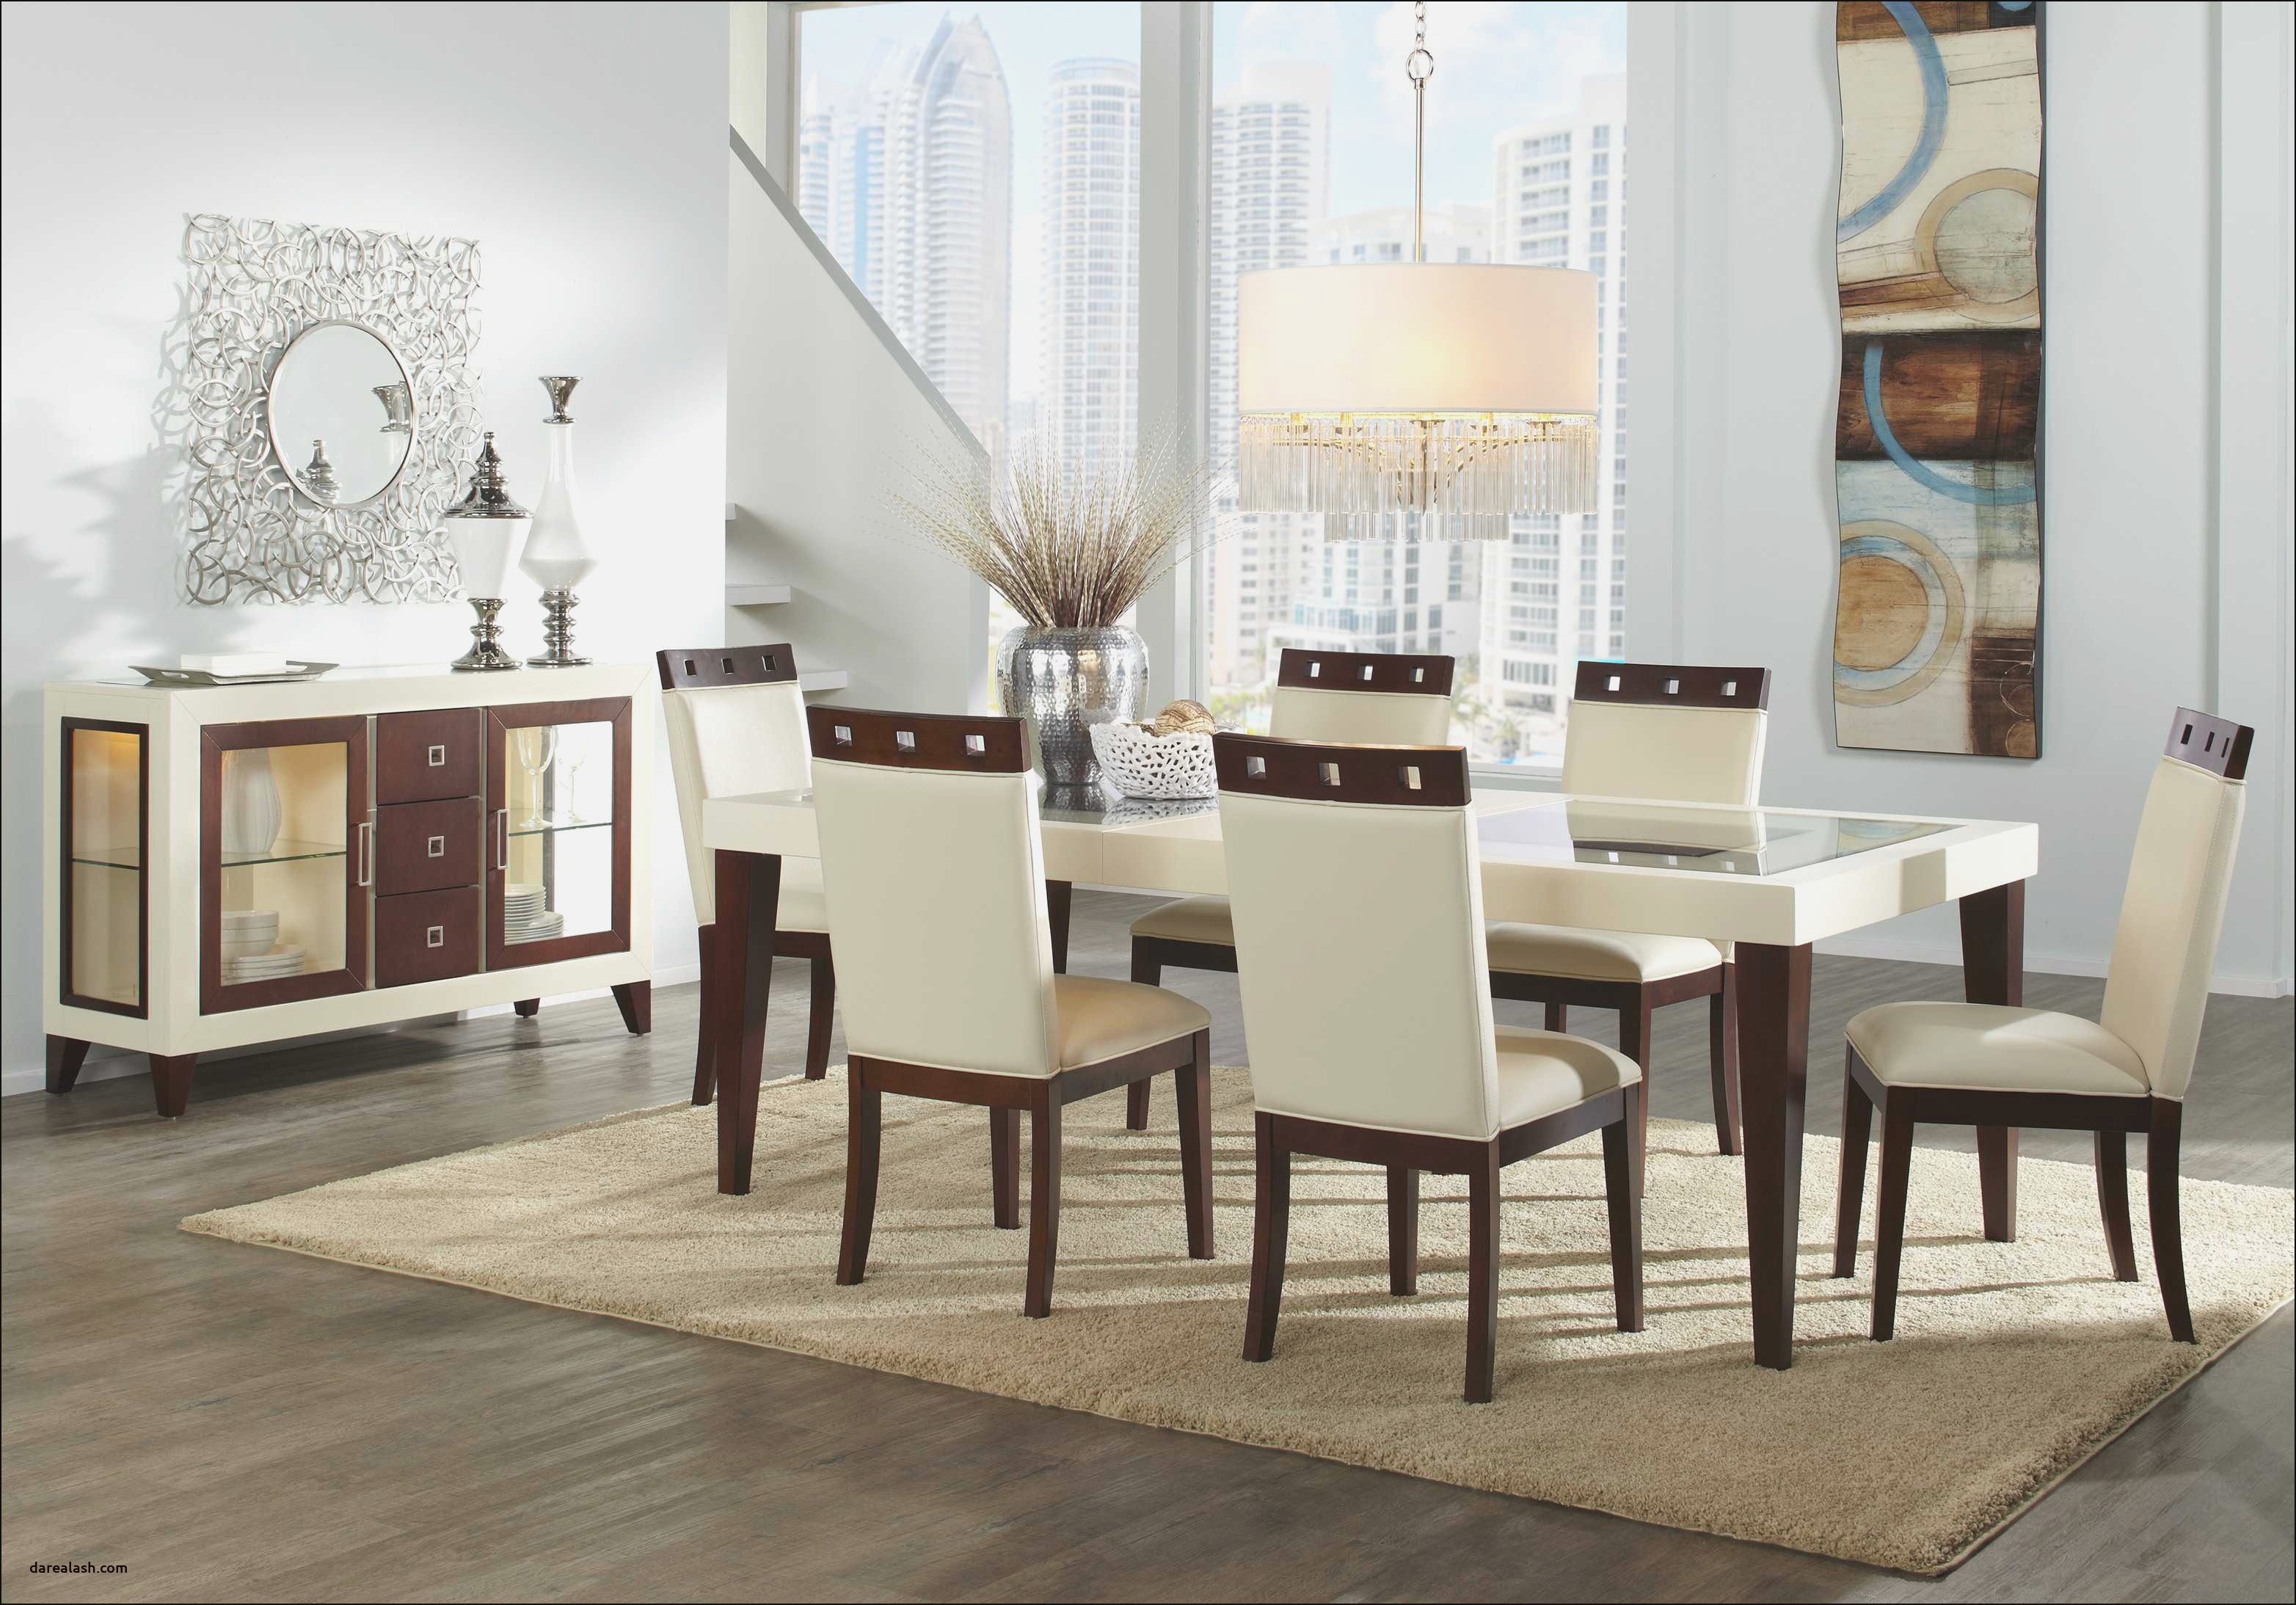 Lovely Rooms To Go Dining Room Tables Darealash pertaining to Rooms To Go Living Room Set